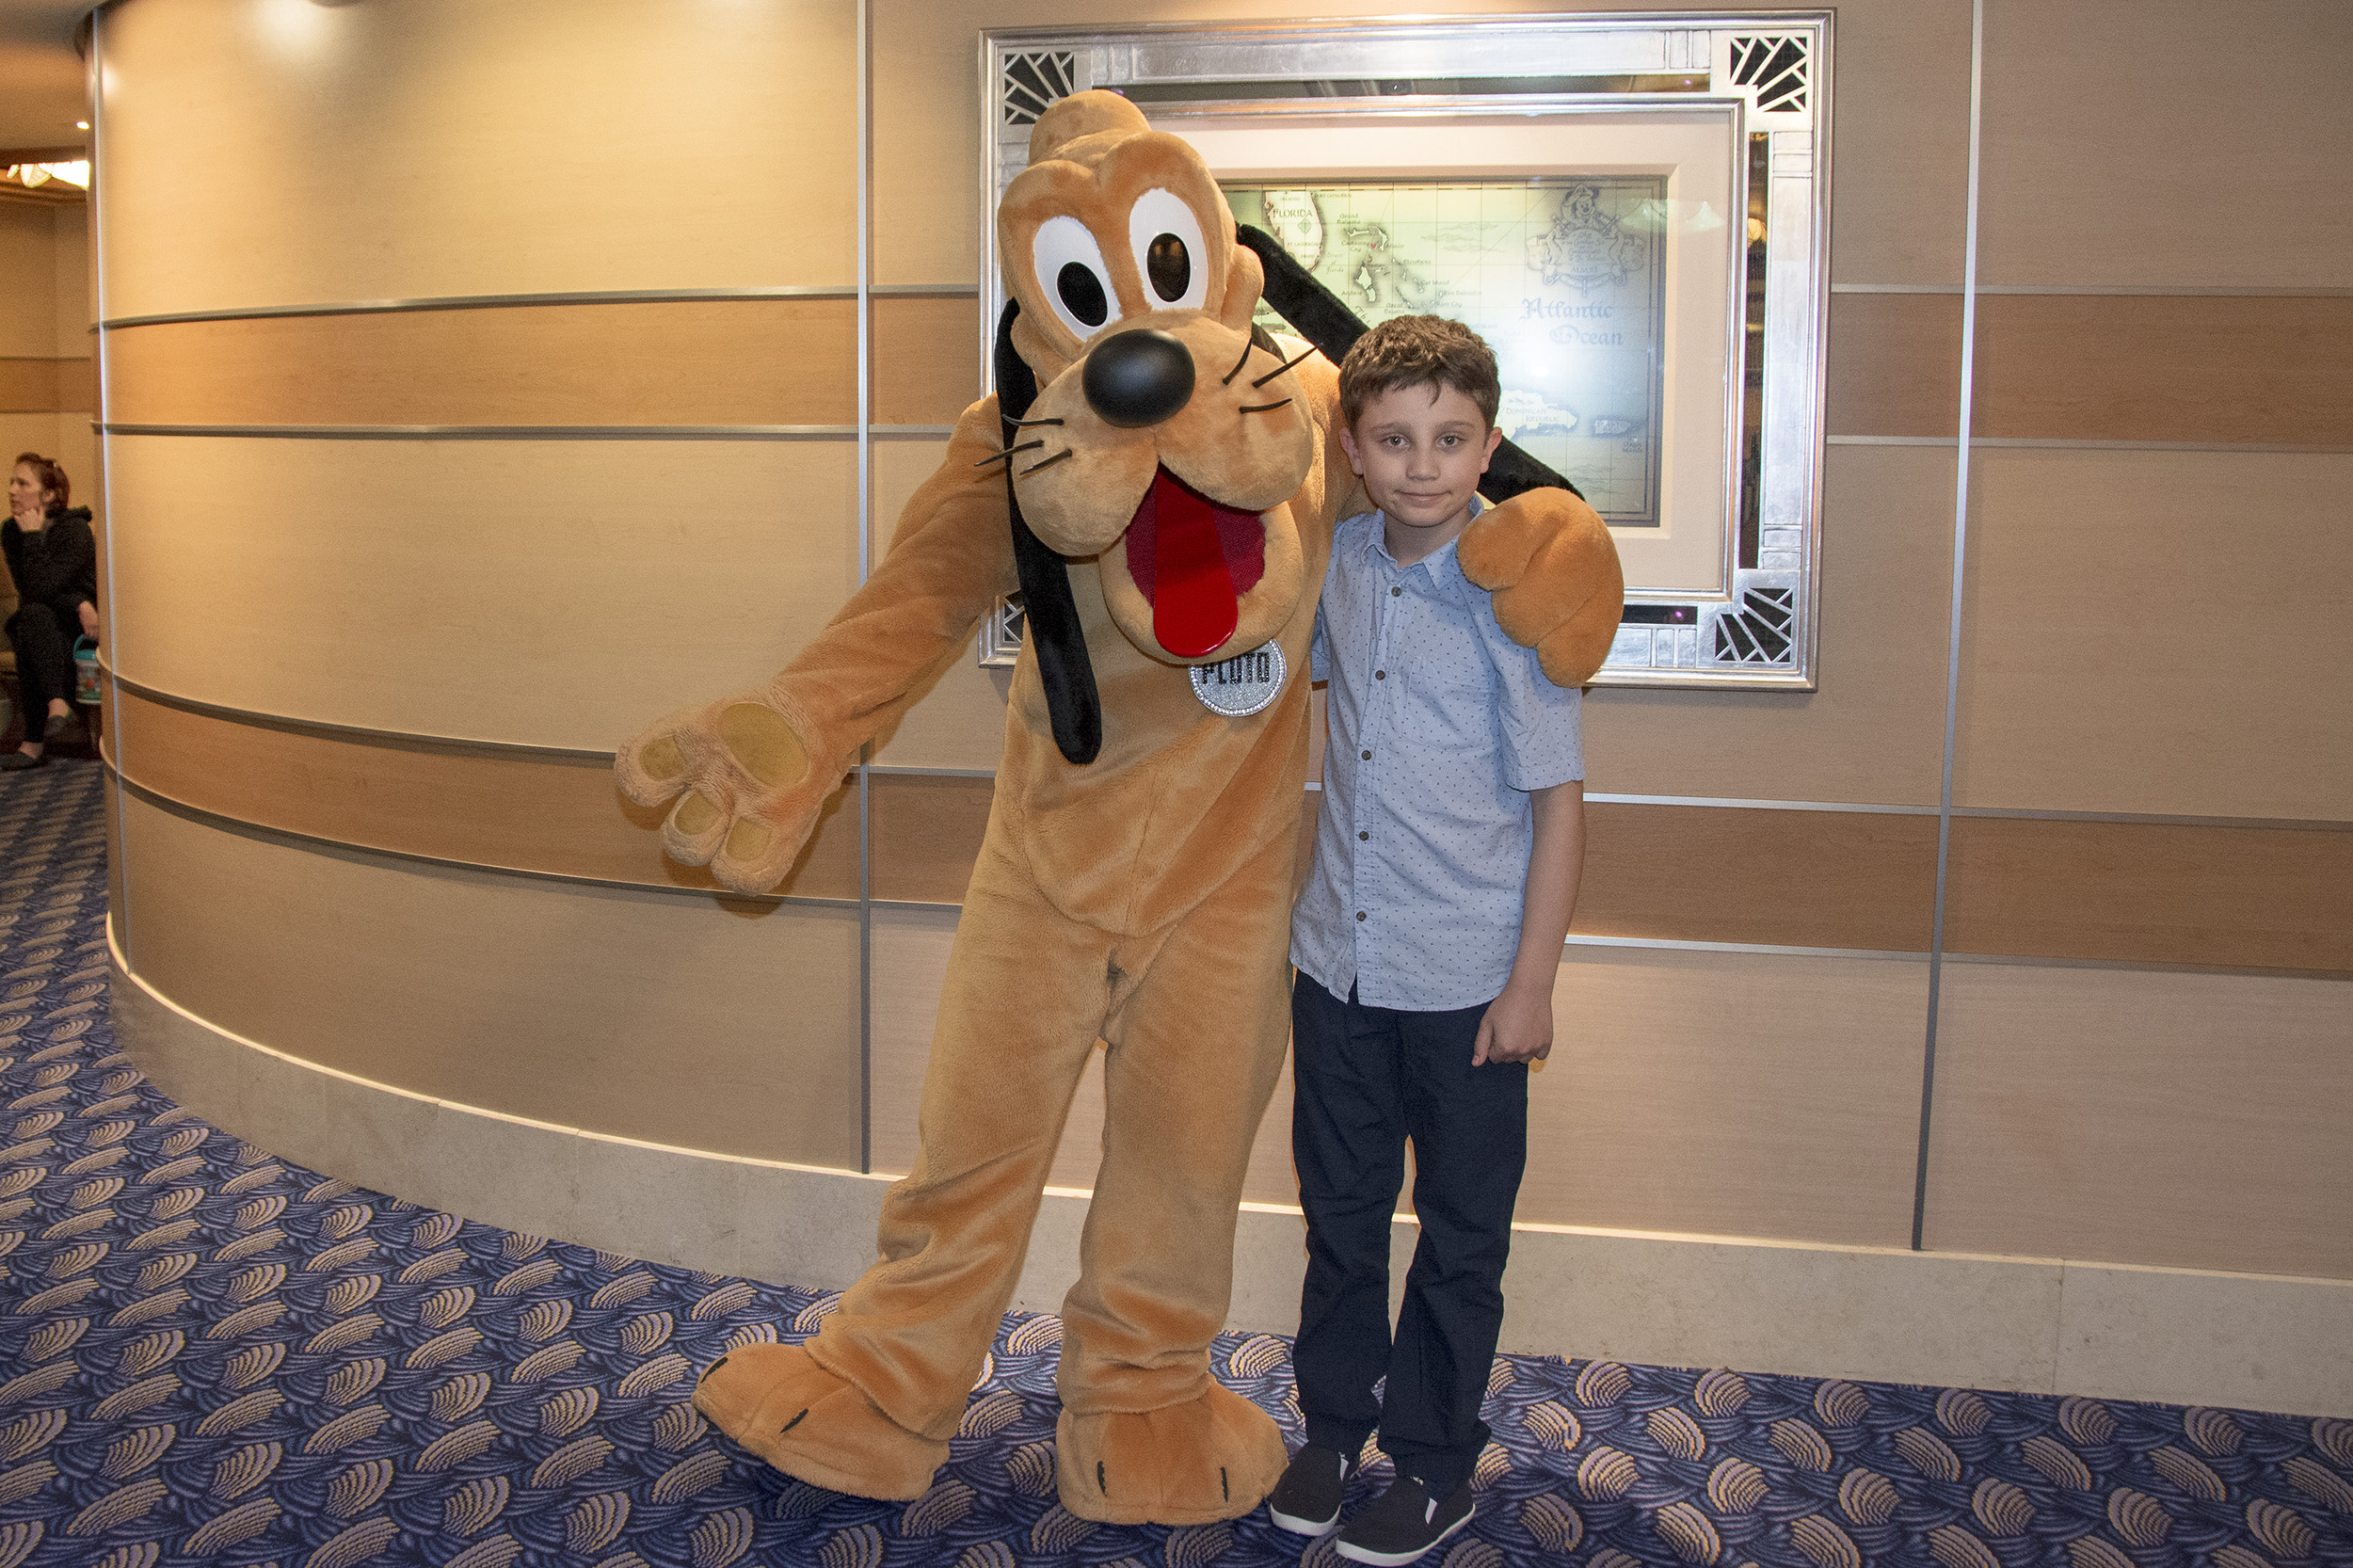 Pluto Disney Dream Kryssning